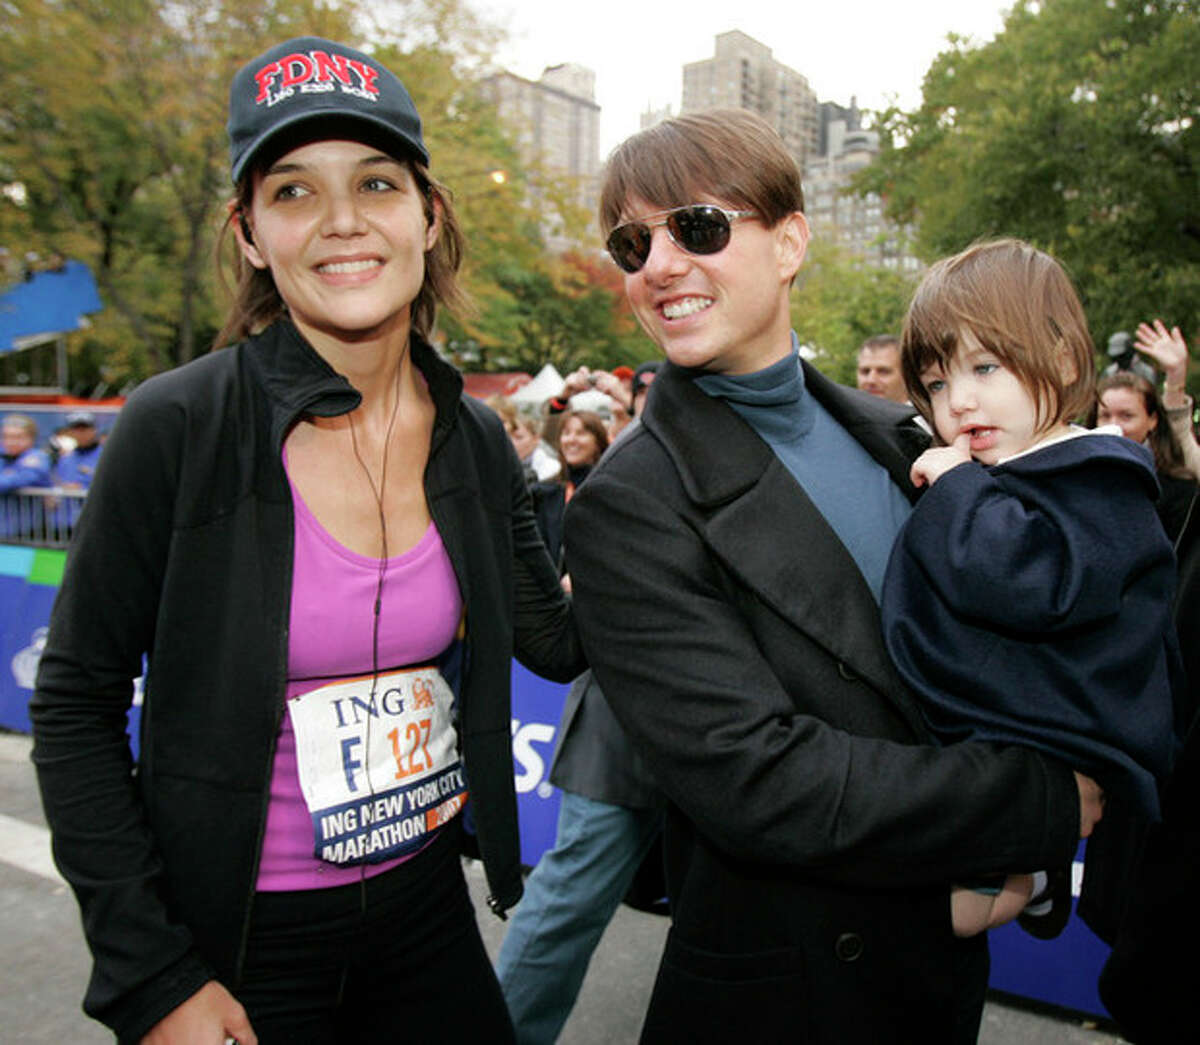 FILE - In this Nov. 4, 2007 file photo, actress Katie Holmes joins her husband Tom Cruise as he holds their daughter Suri after Holmes finished the New York City Marathon in New York. Holmes' attorney Jonathan Wolfe said Friday June 29, 2012 that the couple is divorcing, but called it a private matter for the family. (AP Photo/Kathy Willens, file)